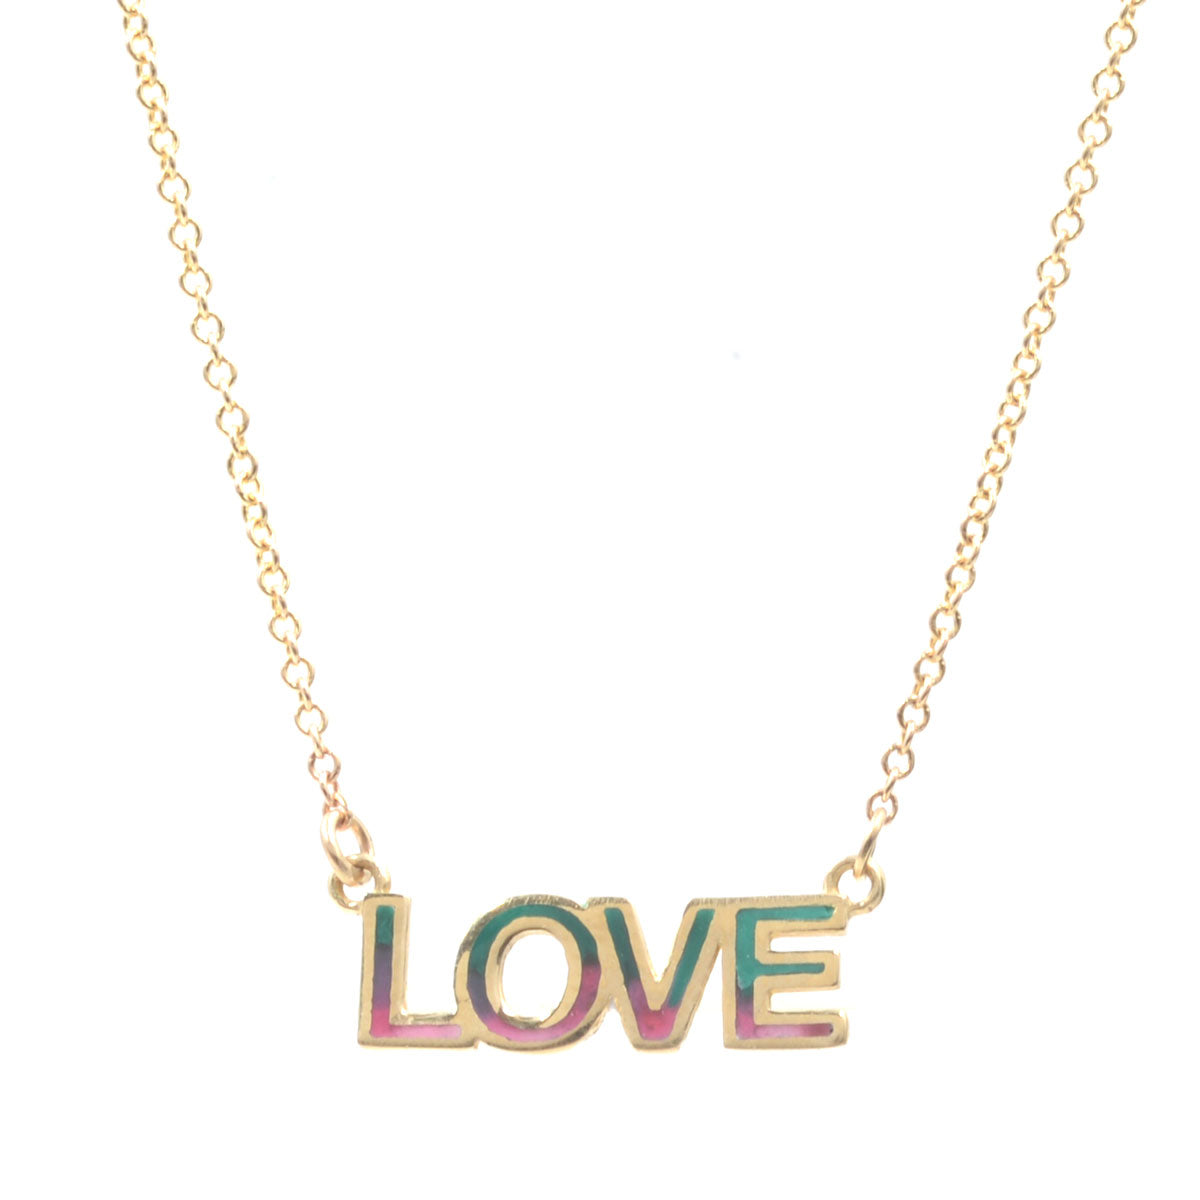 200a6a9b604d2 Tie Dye Enamel LOVE Nameplate Necklace